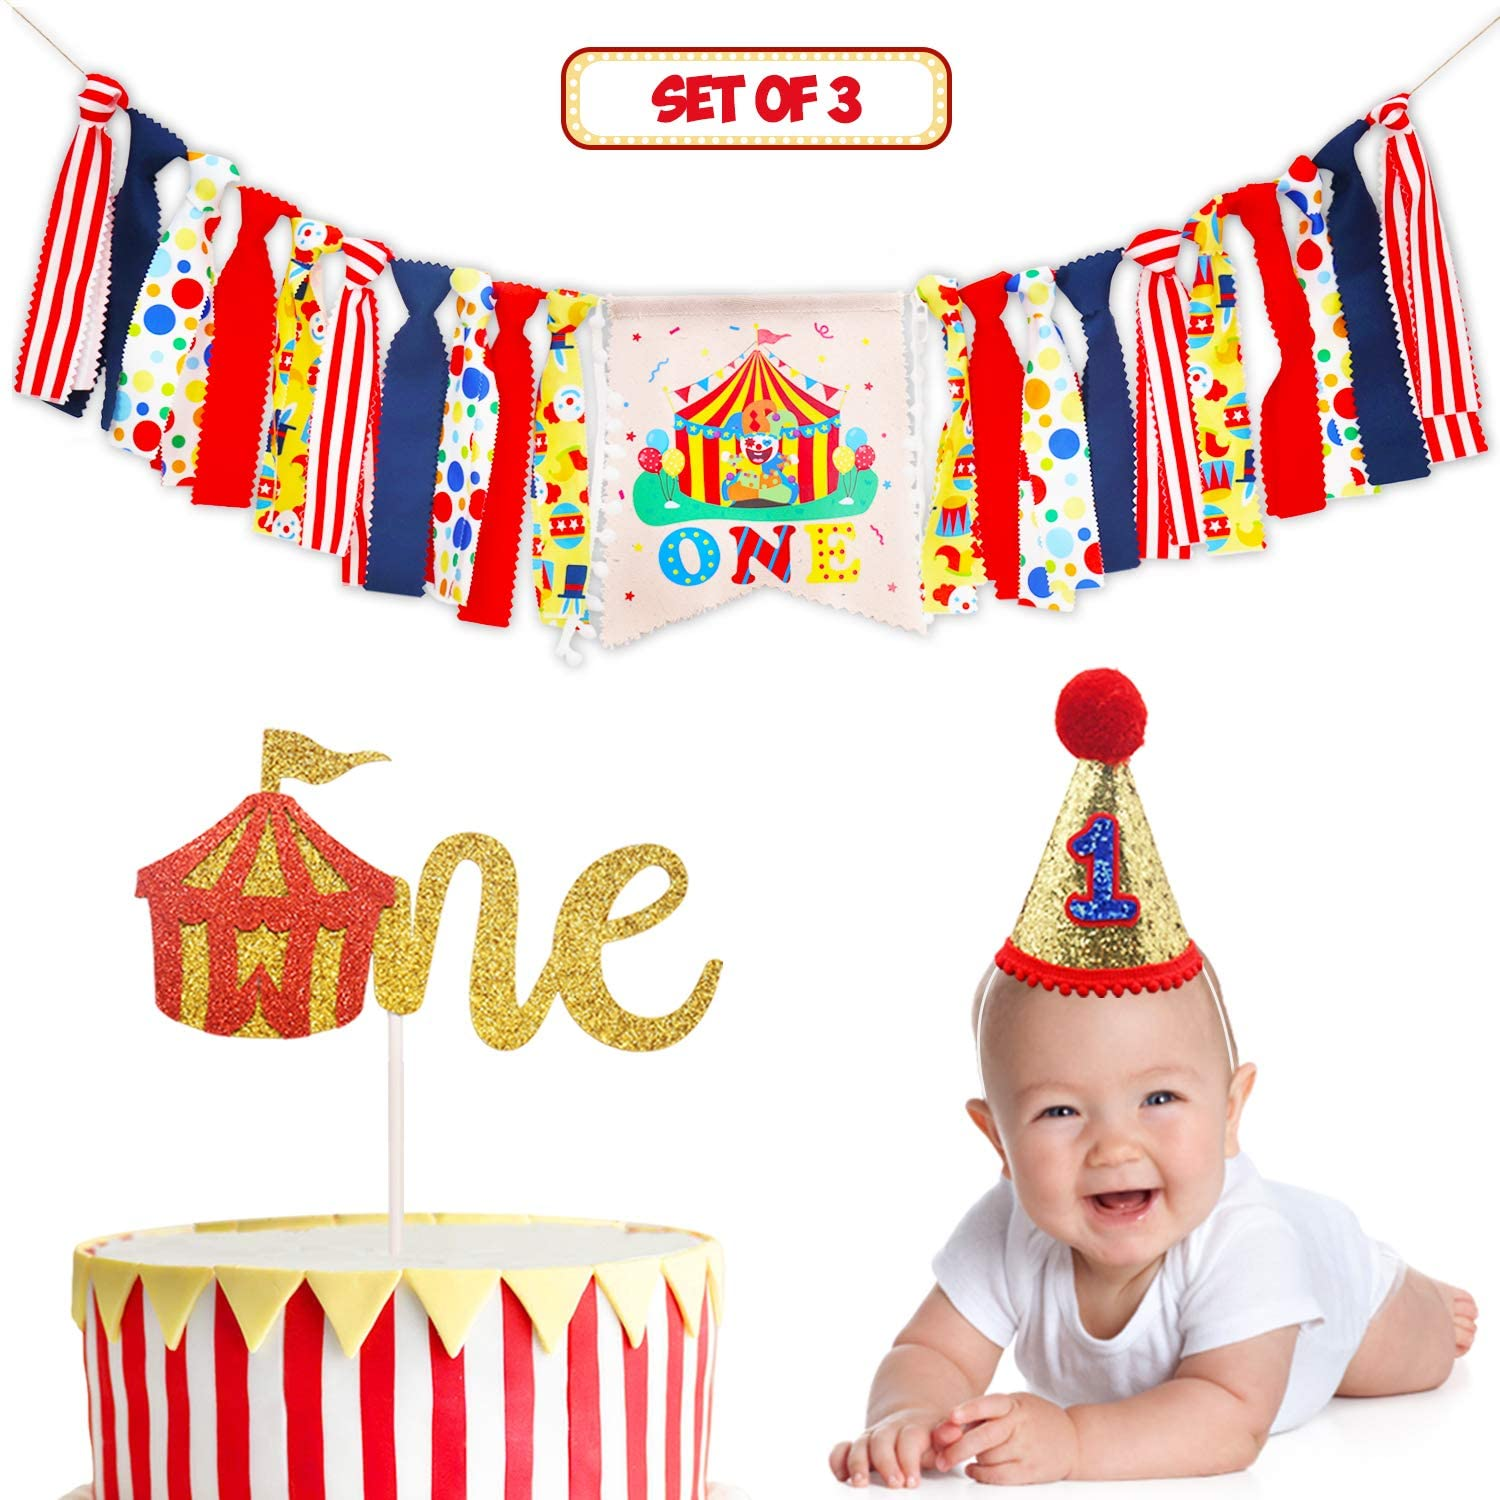 Circus Carnival Theme 1st Birthday Decorations Kit -One Burlap High Chair Banner- Cake Smash Greatest Showman Themed Party Supplies- Glitter Red Felt 1st Birthday Big Top Hat- Circus Tent Cake Topper